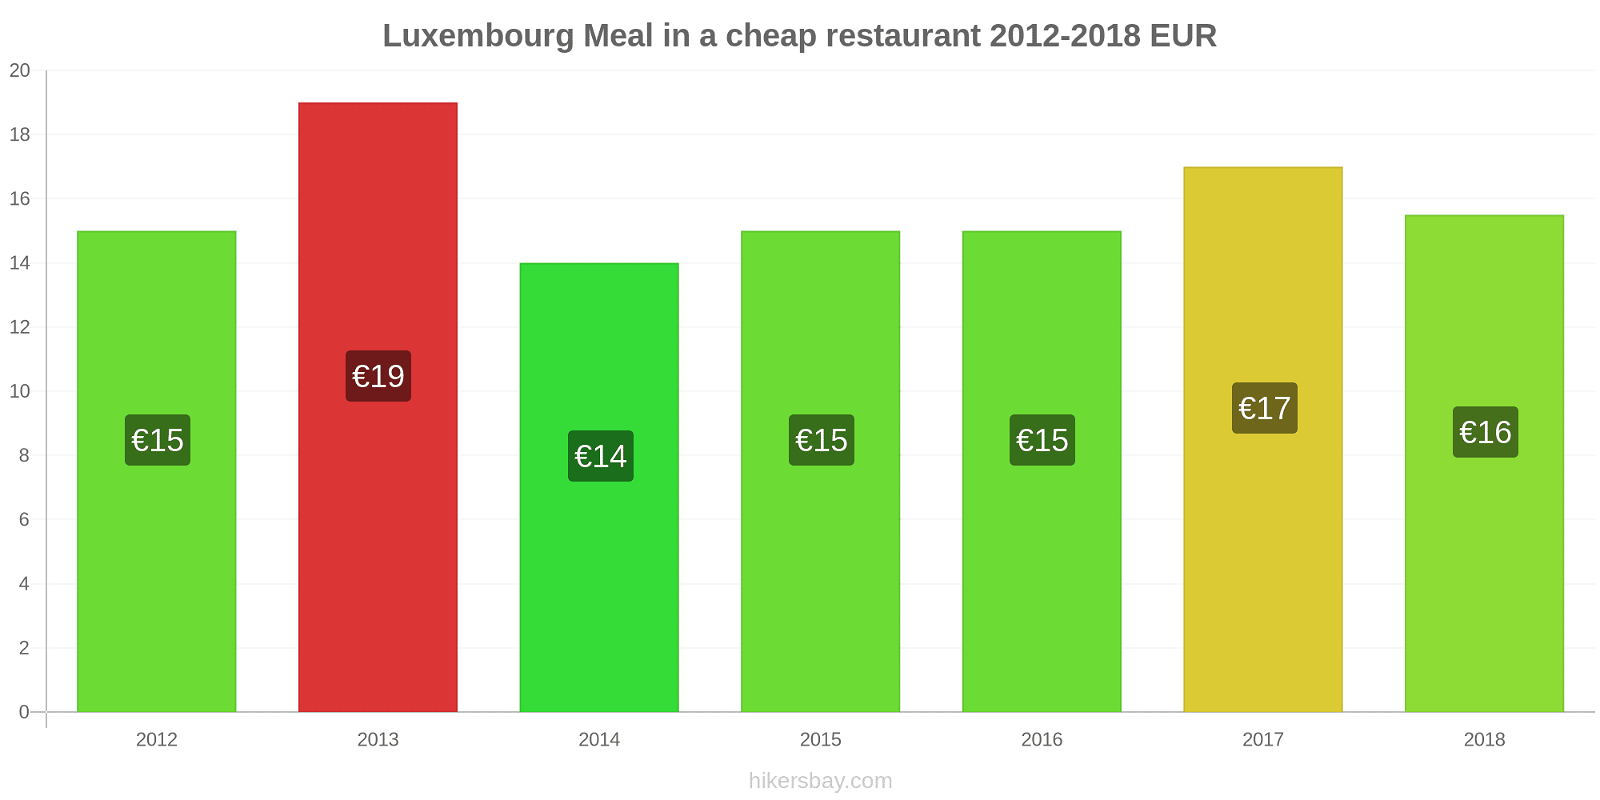 Luxembourg price changes Meal in a cheap restaurant hikersbay.com